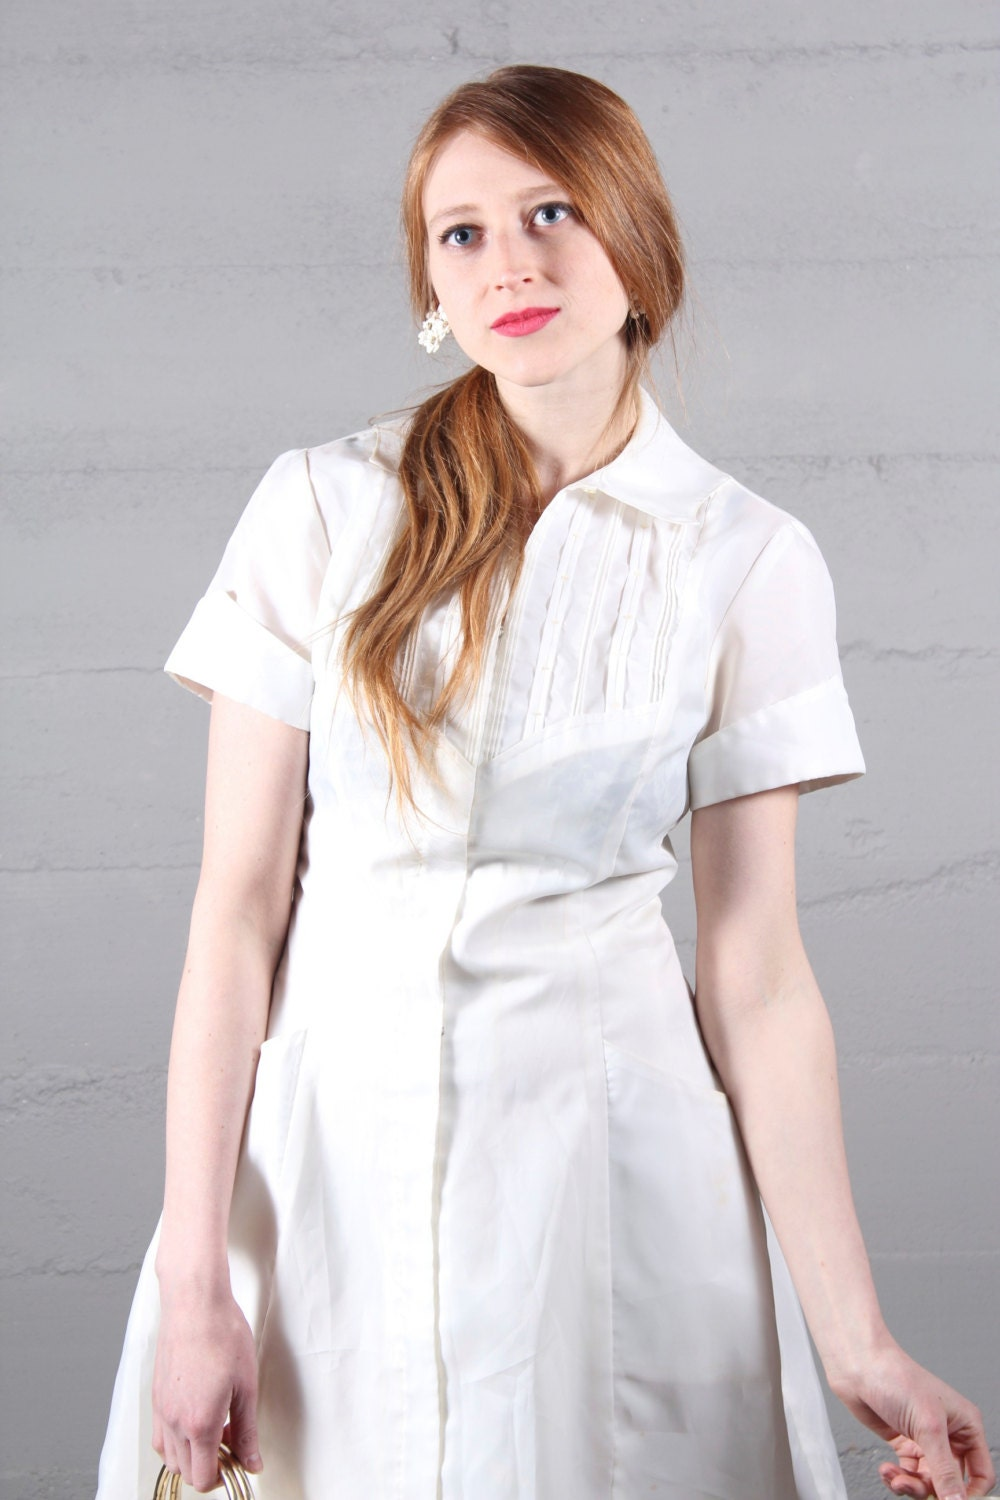 White Nurse Dress